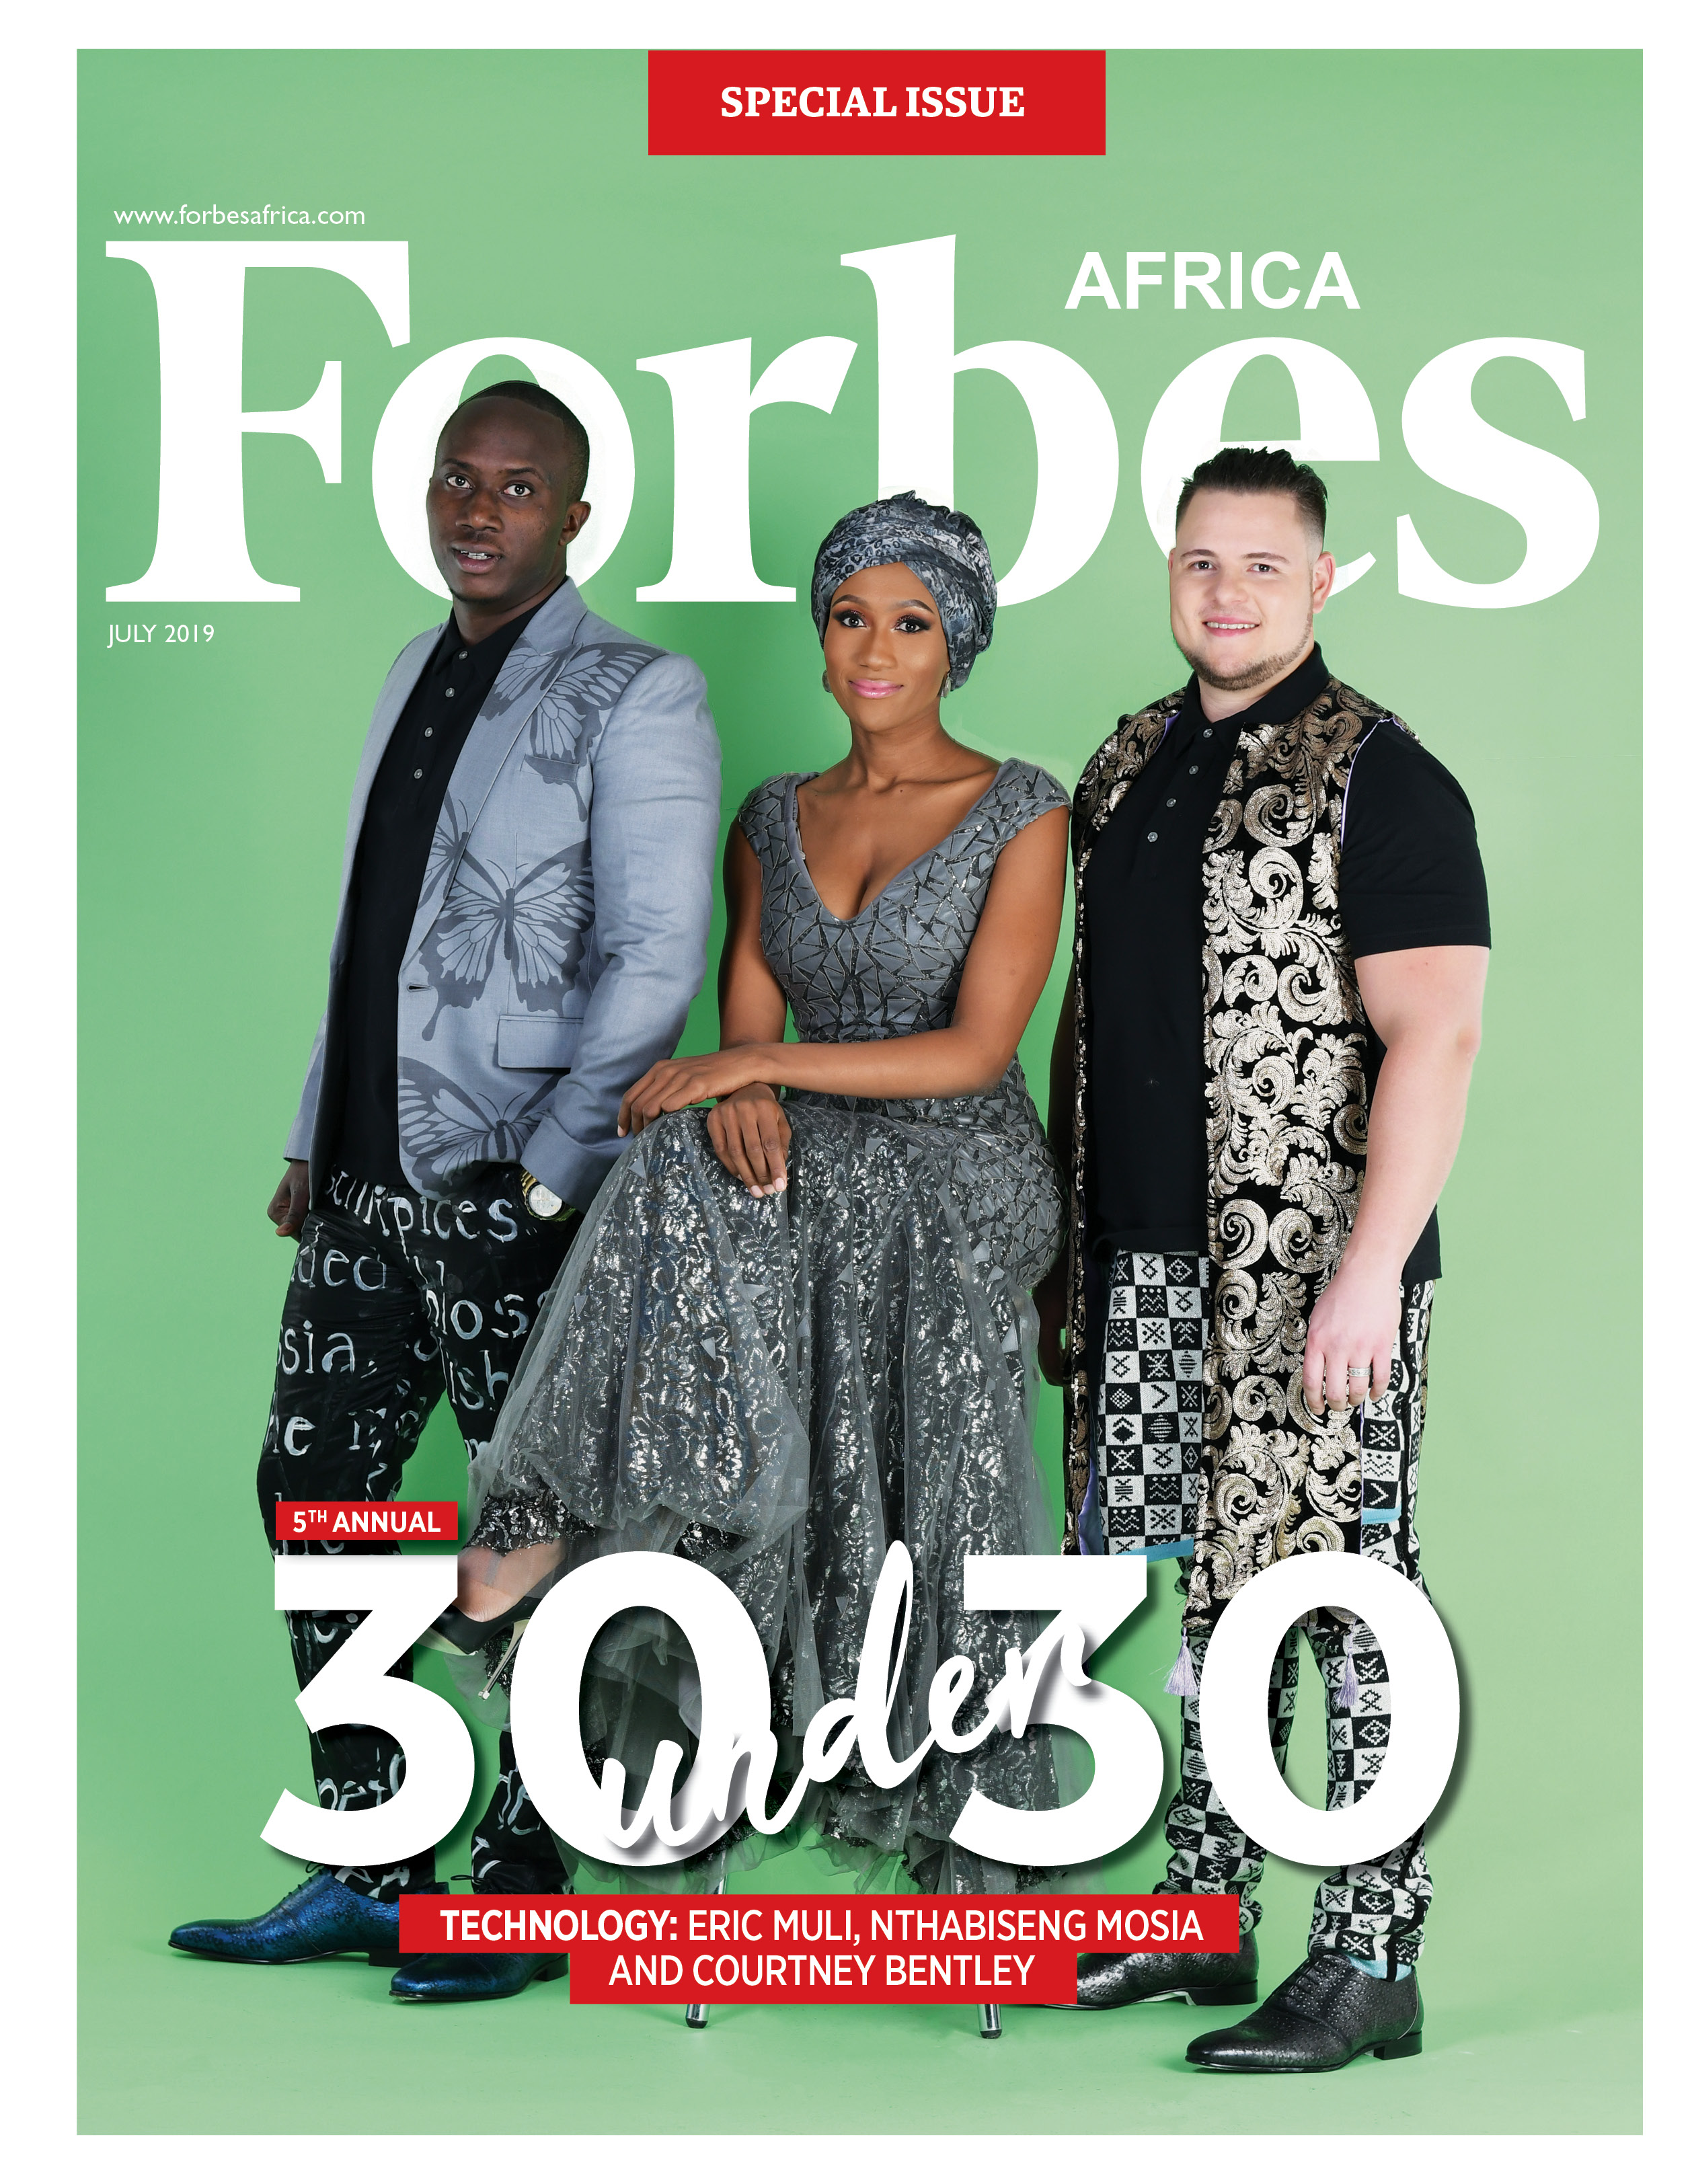 FORBES AFRICA REVEALS 30 UNDER 30 LIST  FOR 2019 2019 30 Under 30 Technology